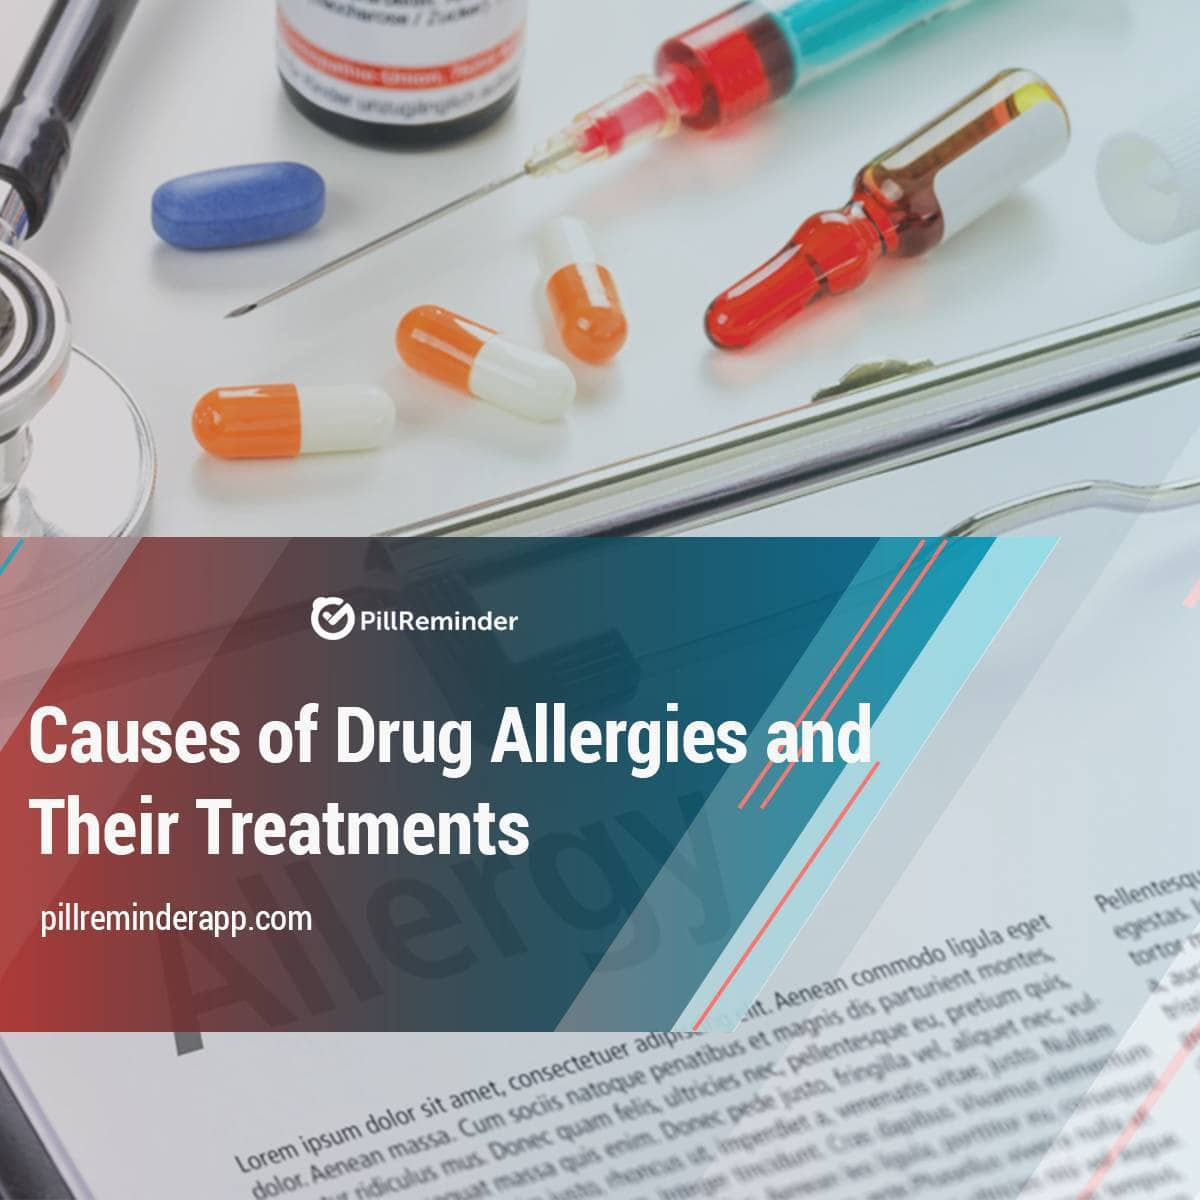 Causes of Drug Allergies and Their Treatments